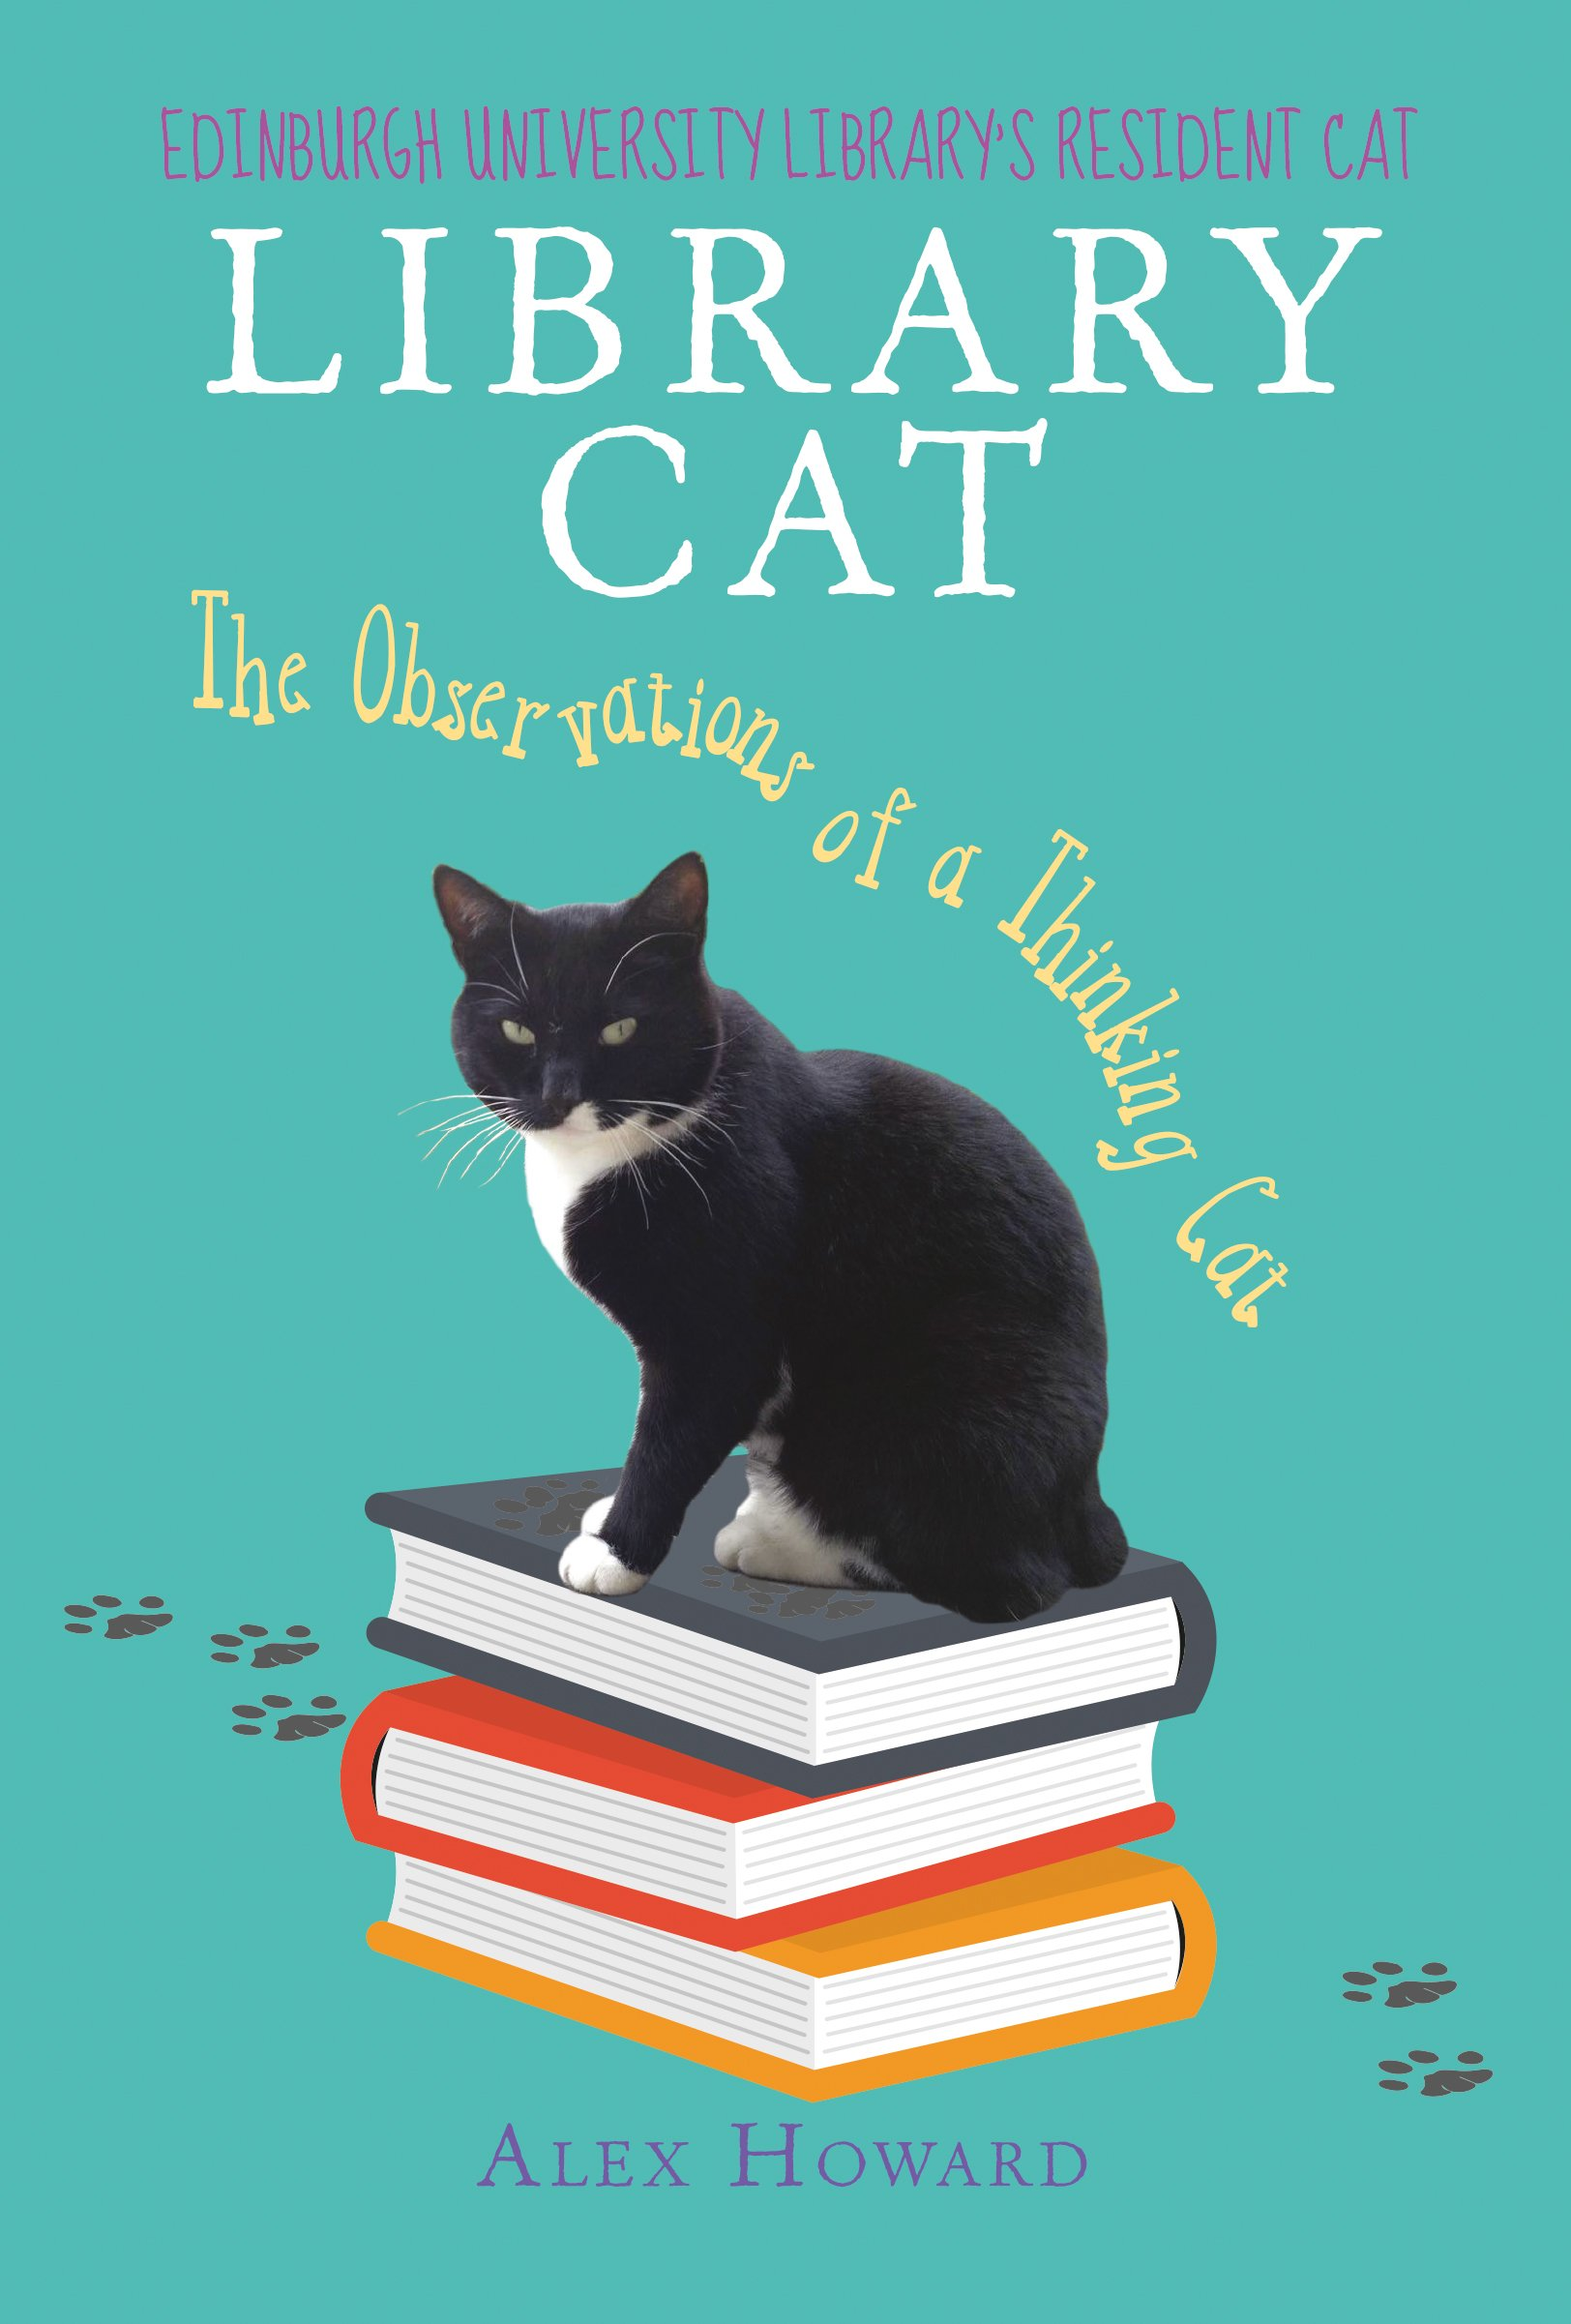 library cat the observations of a thinking cat amazon co uk library cat the observations of a thinking cat amazon co uk alex howard 0884619487458 books